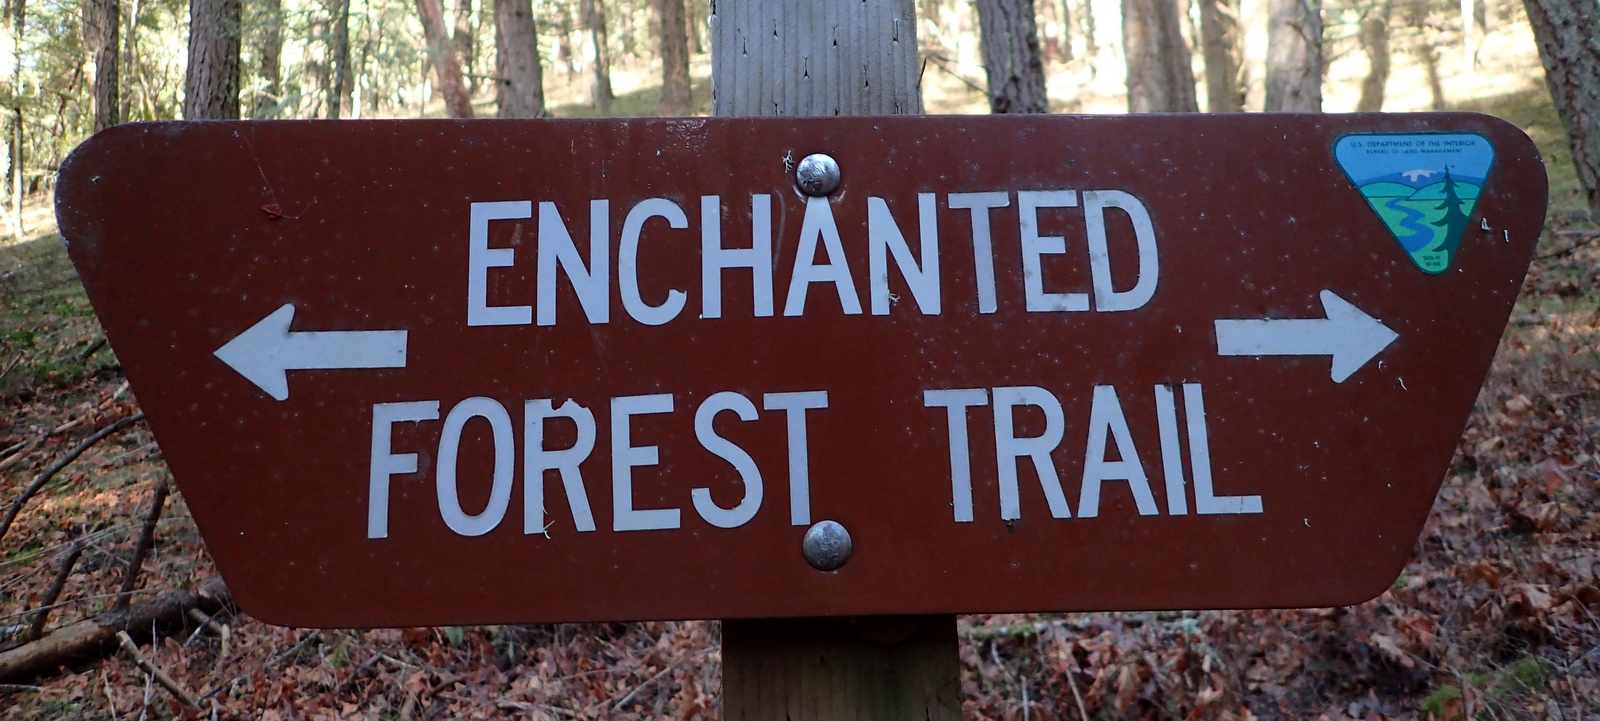 Enchanted Forest Trail Applegate Oregon